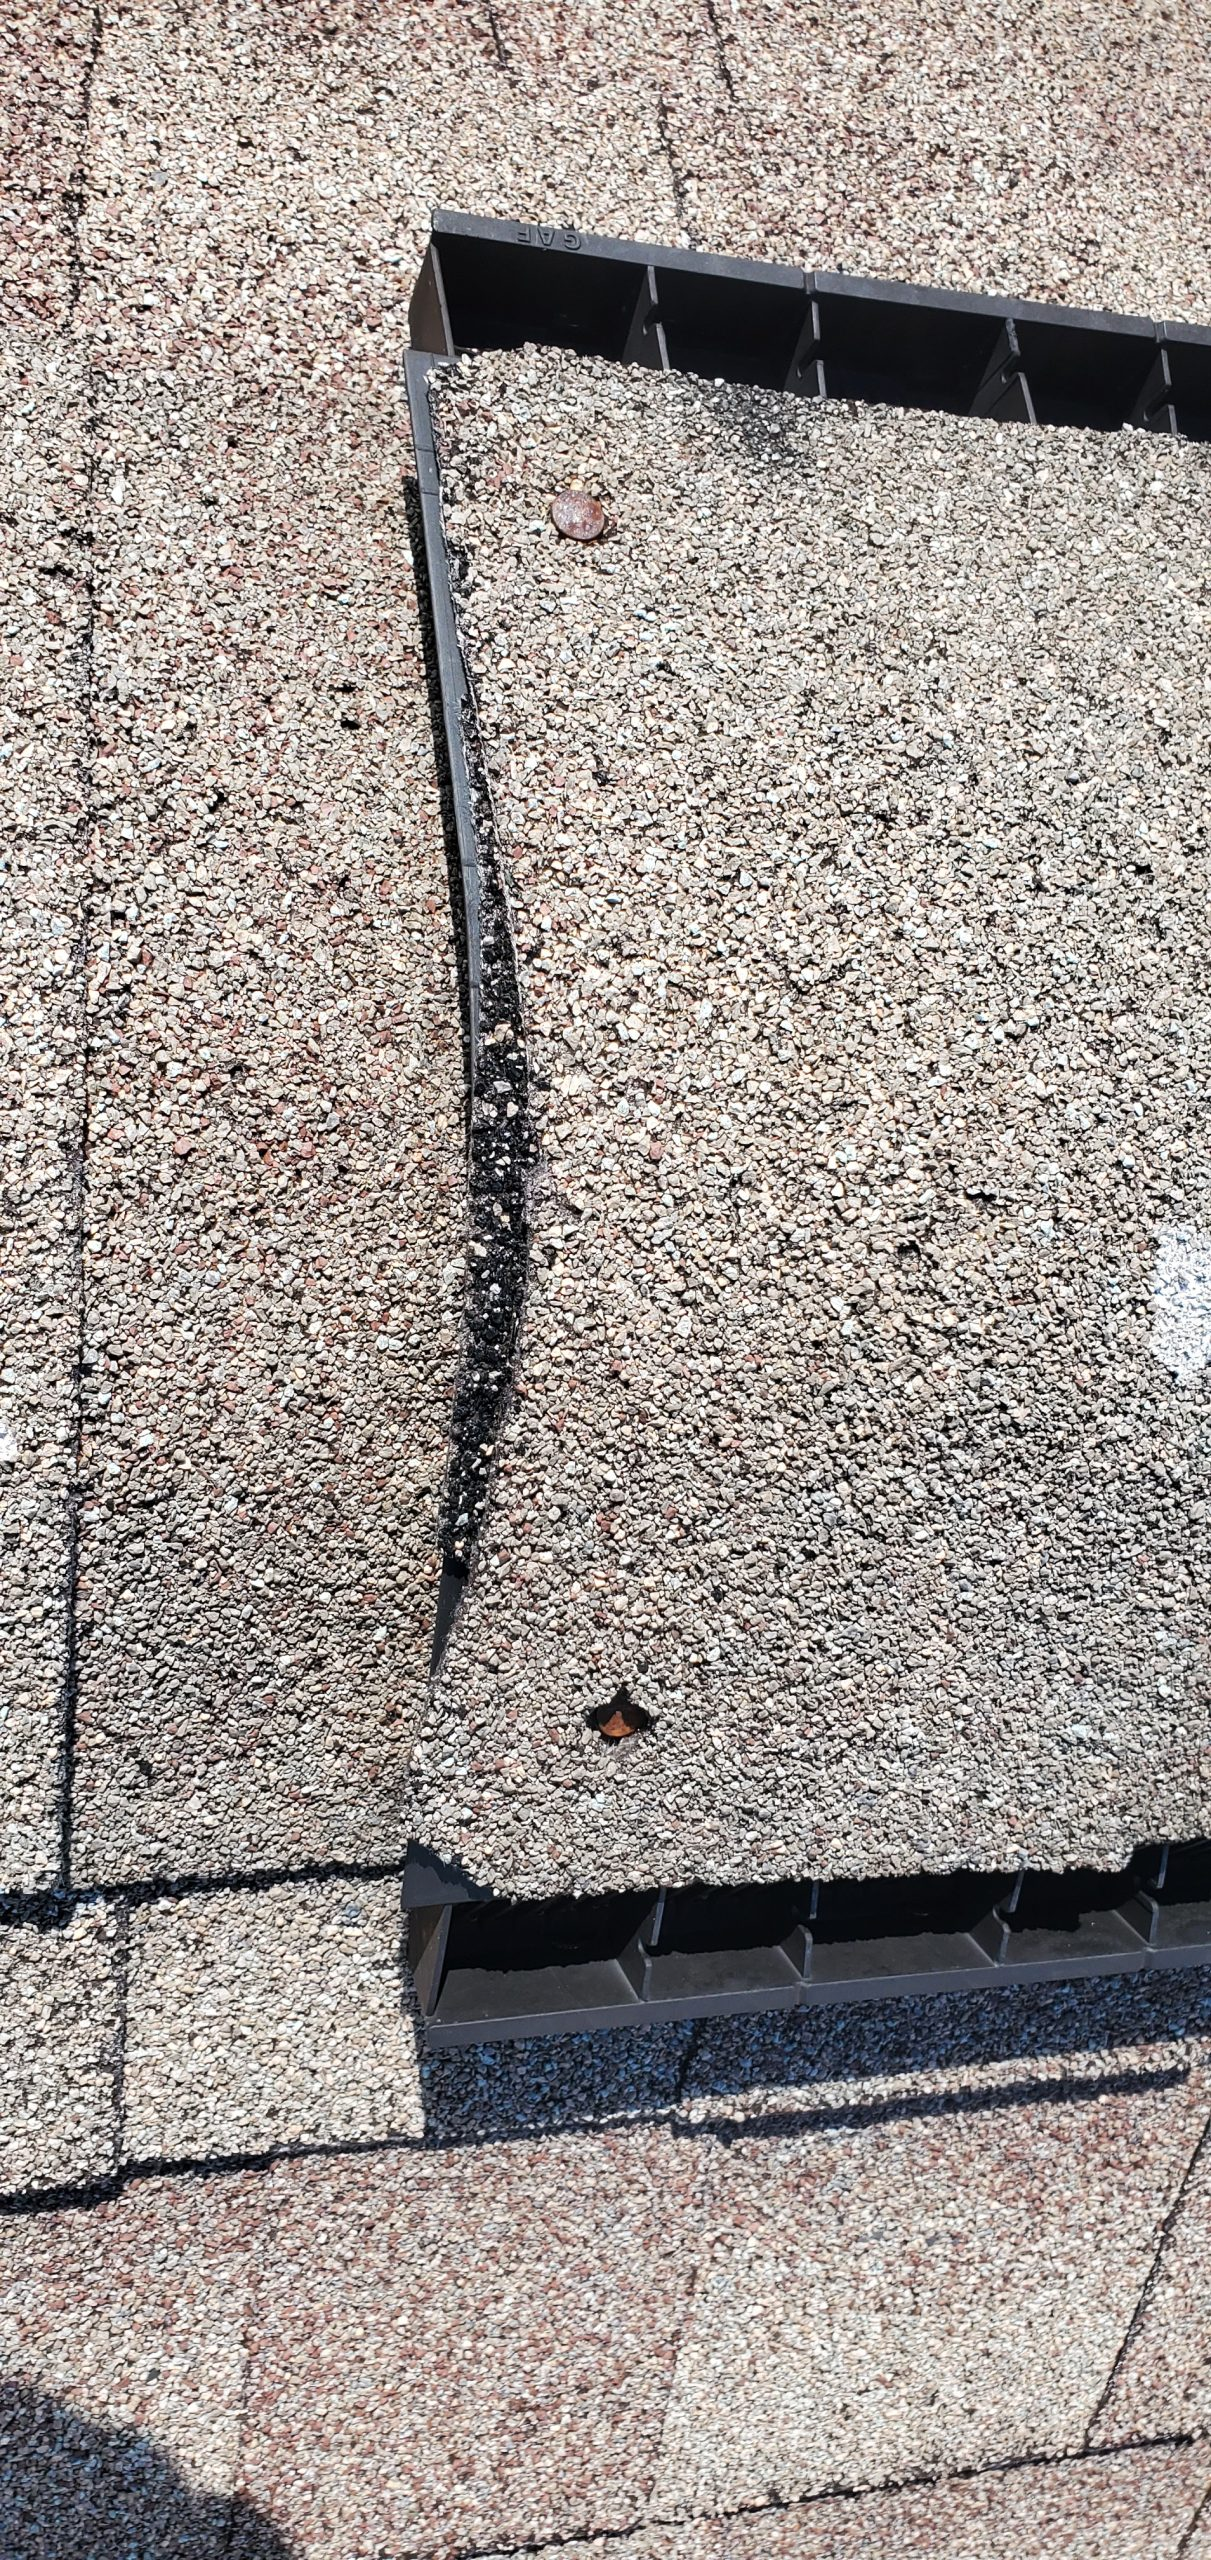 this is a picture of an exposed nail that is on a ridge vent of a roof